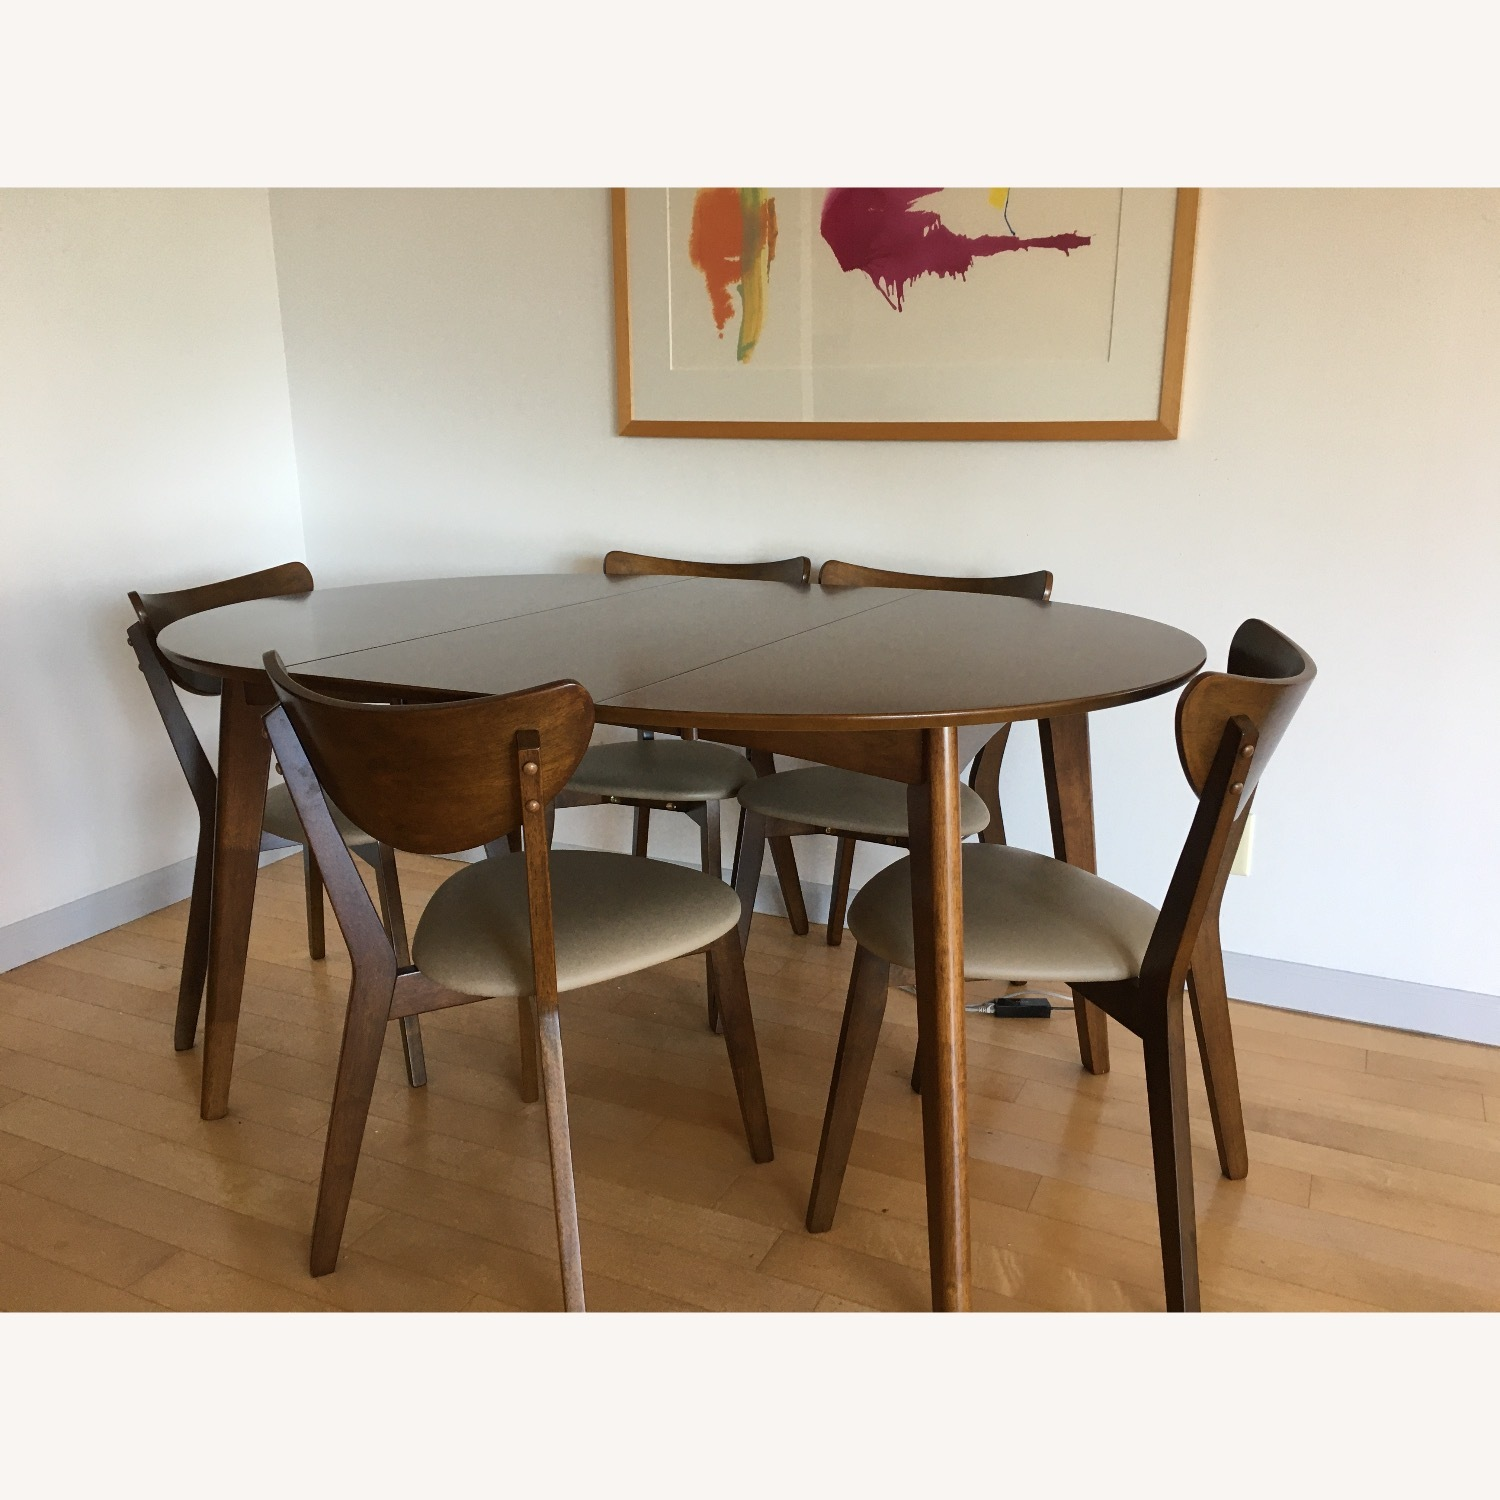 Mid-Century Modern Walnut Dining Table and Chairs - image-1